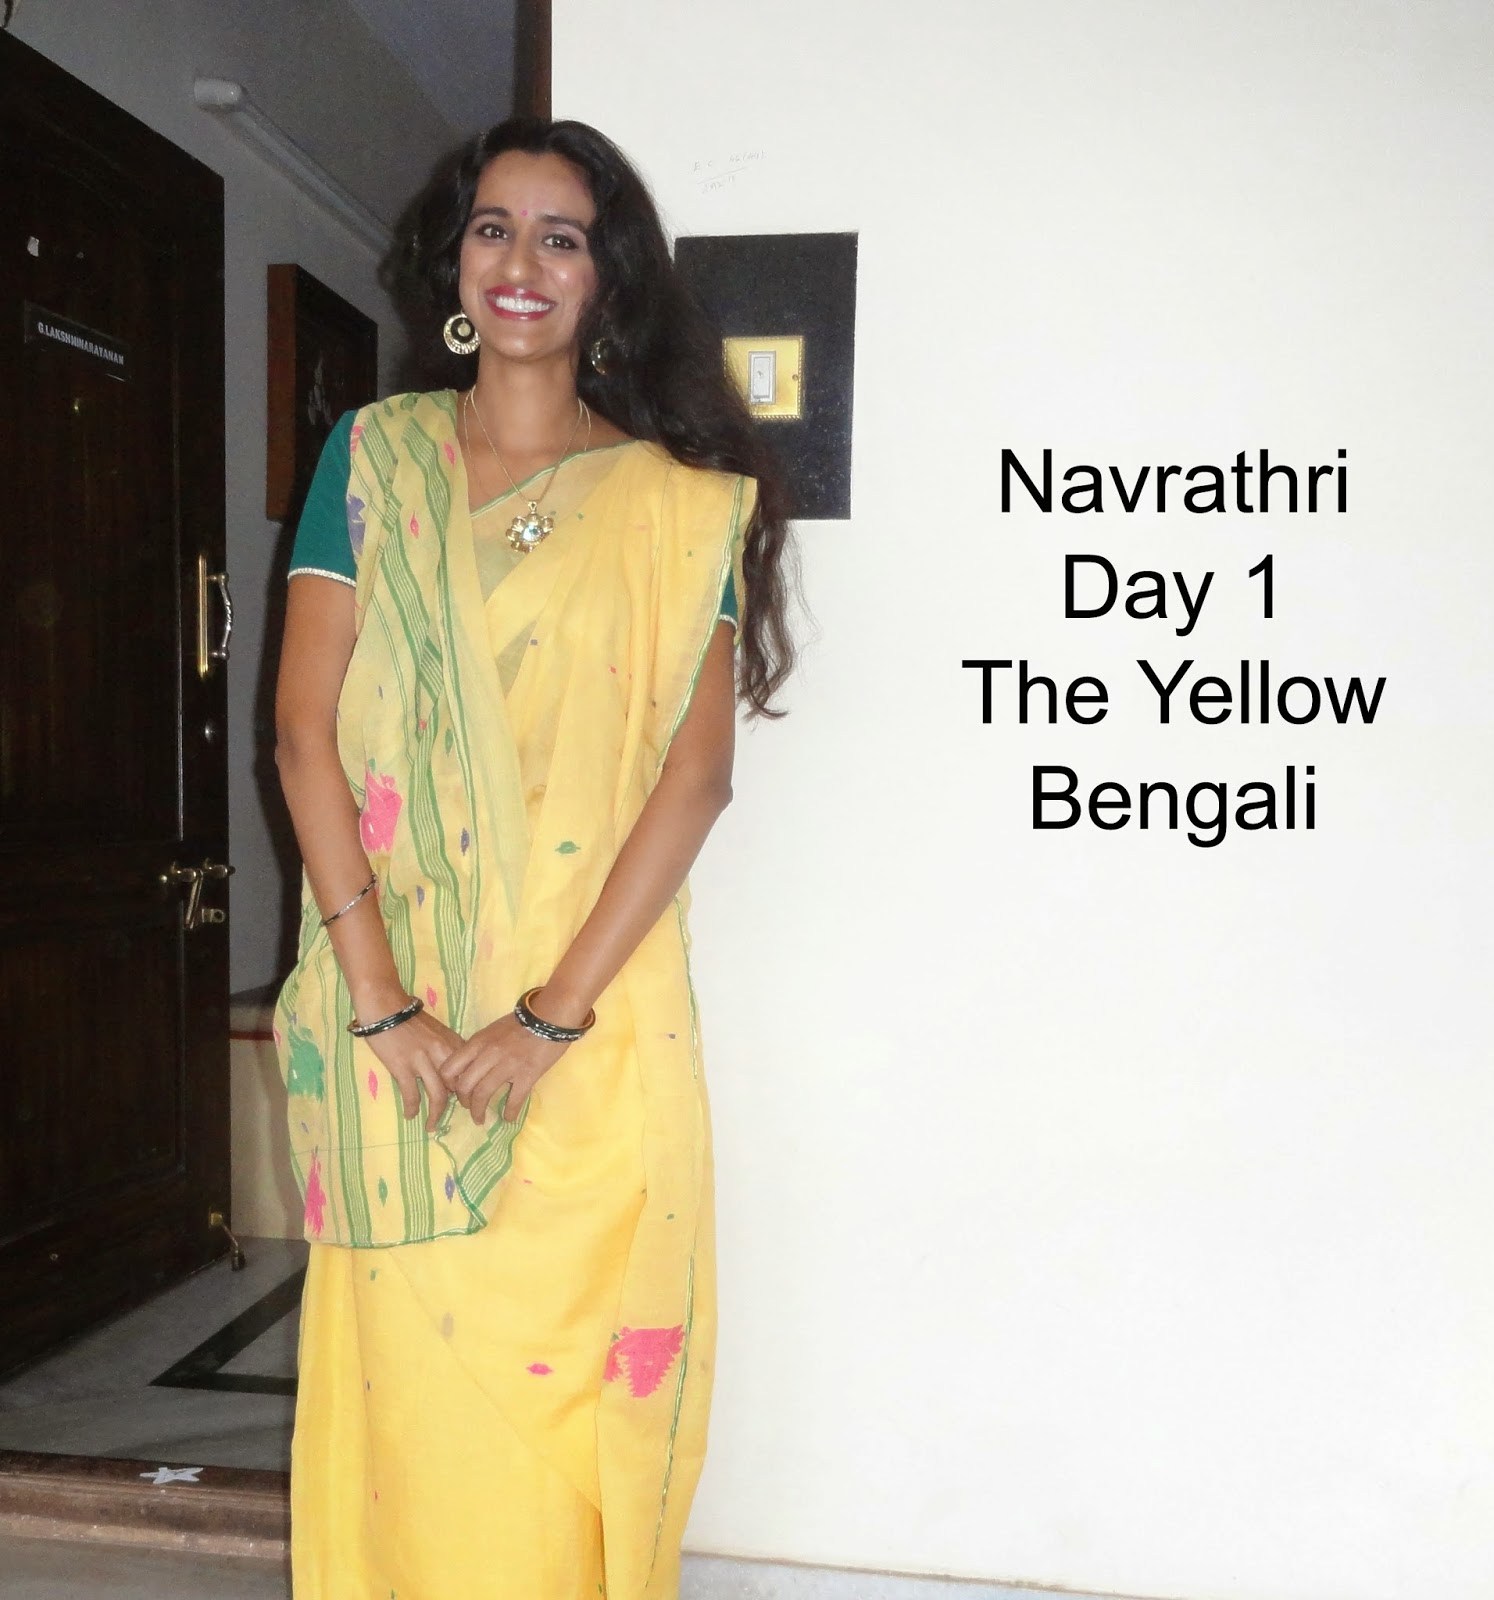 Navrathri Day 1 outfit: The Yellow Bengali image